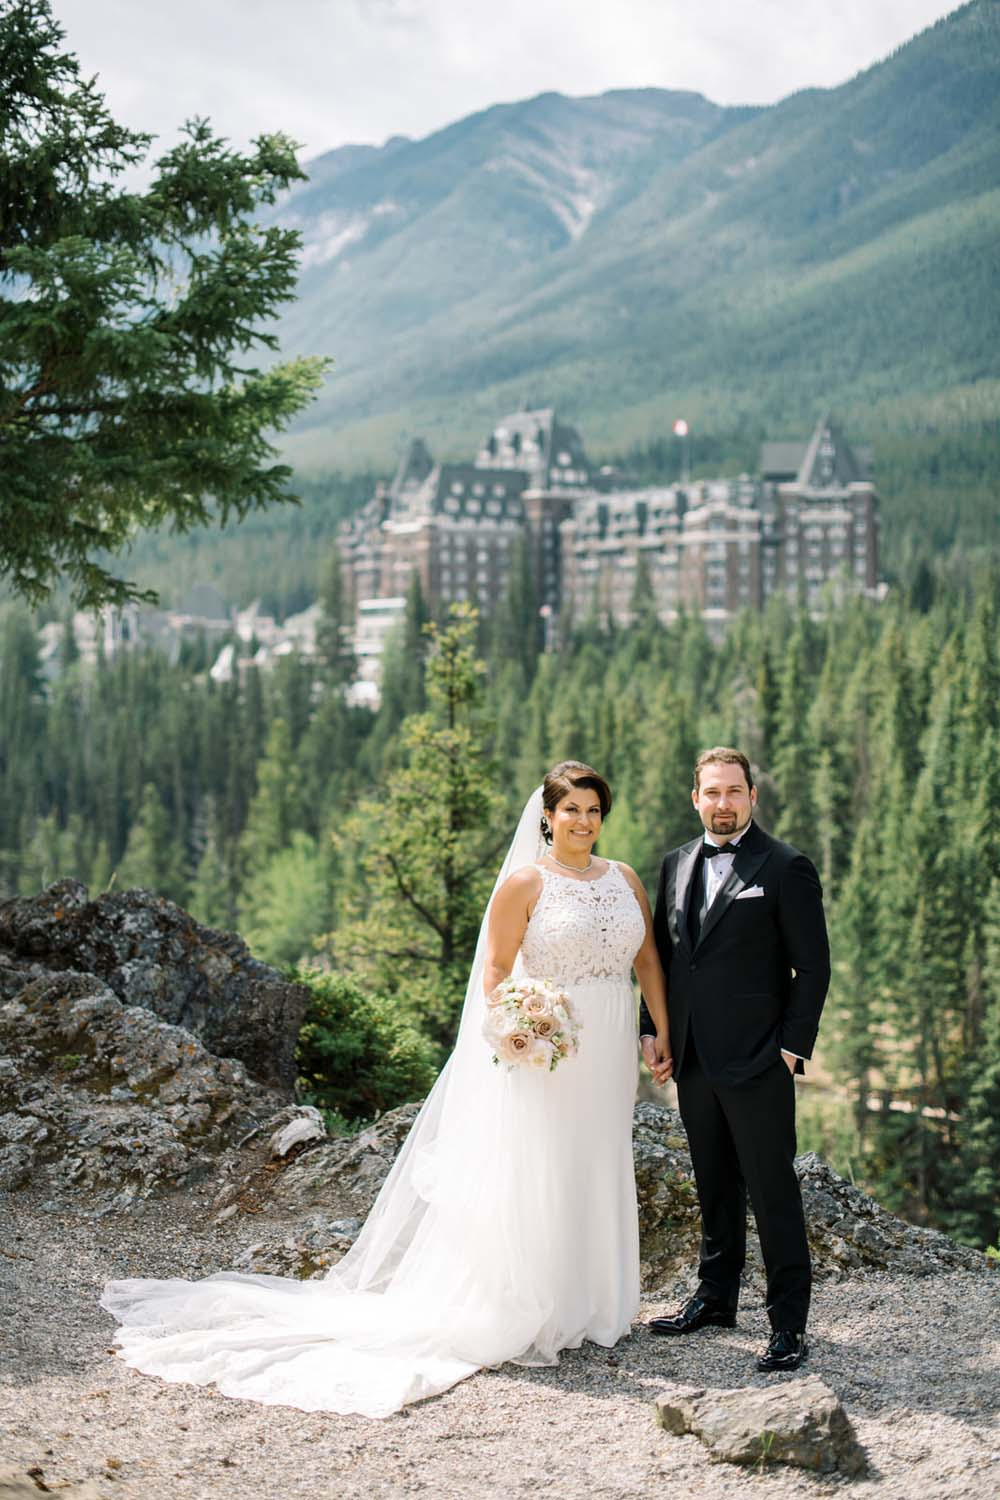 A Regal Fairytale Wedding in Banff, Alberta - Bride & Groom